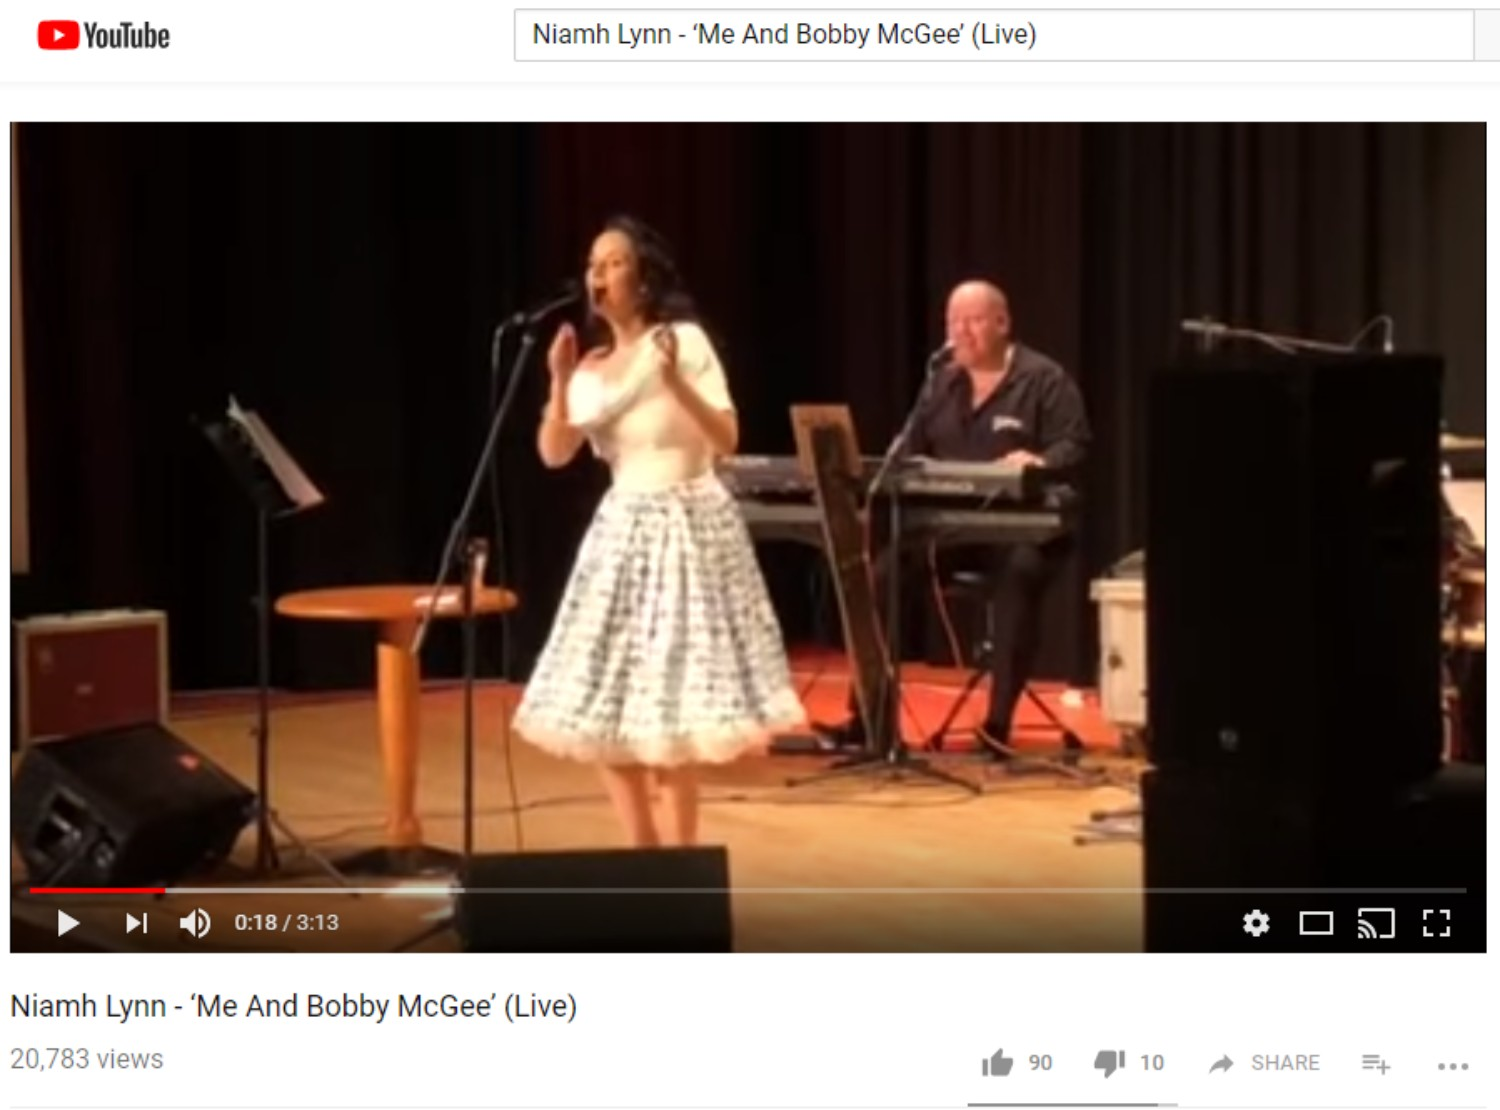 Niamh Lynn - 'Me And Bobby McGee' (Live)